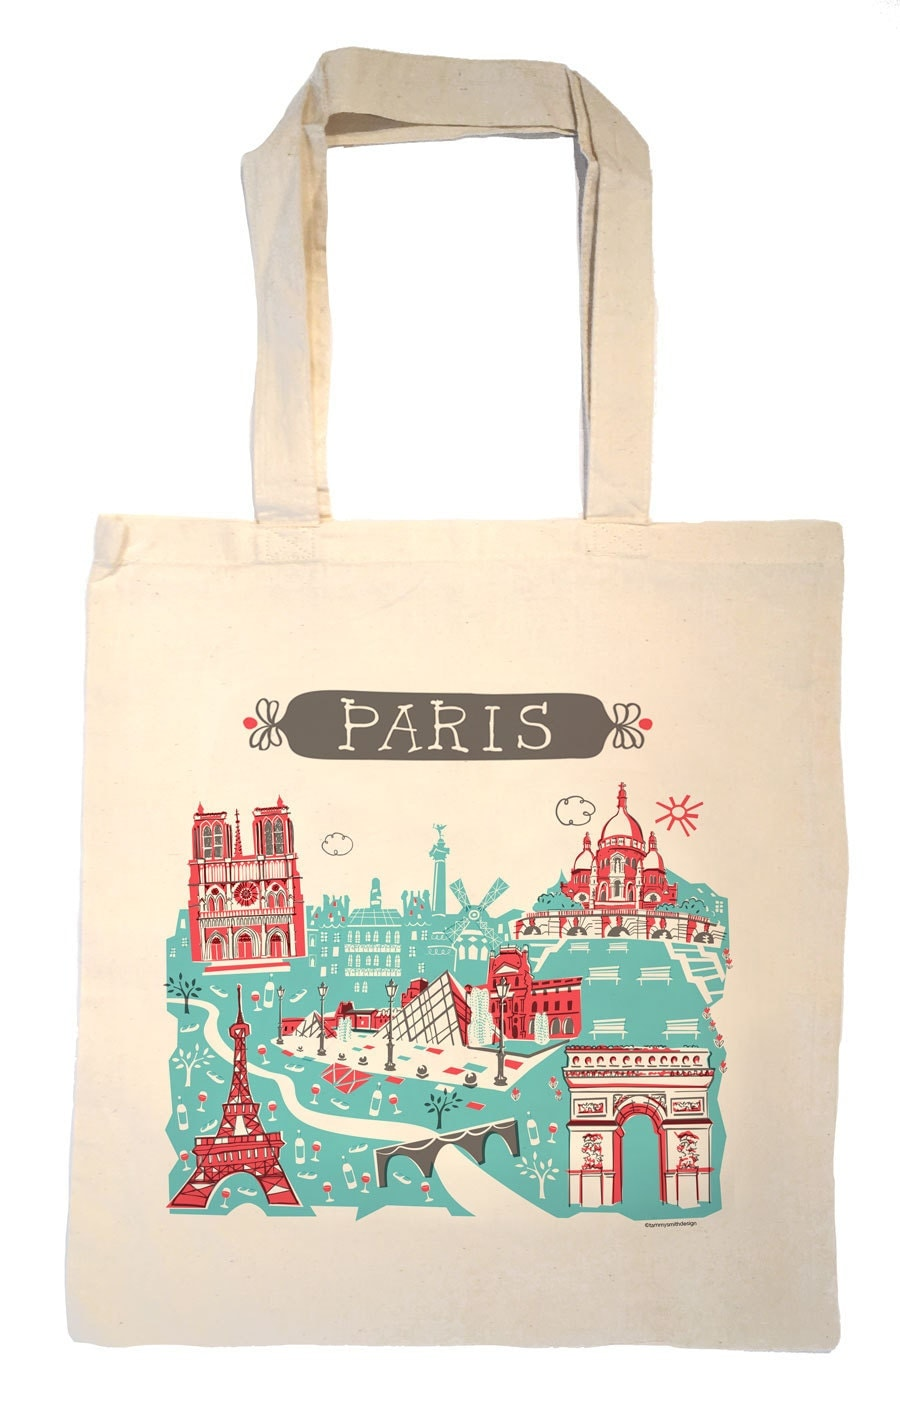 paris tote bag city tote any city tote turquoise red france. Black Bedroom Furniture Sets. Home Design Ideas